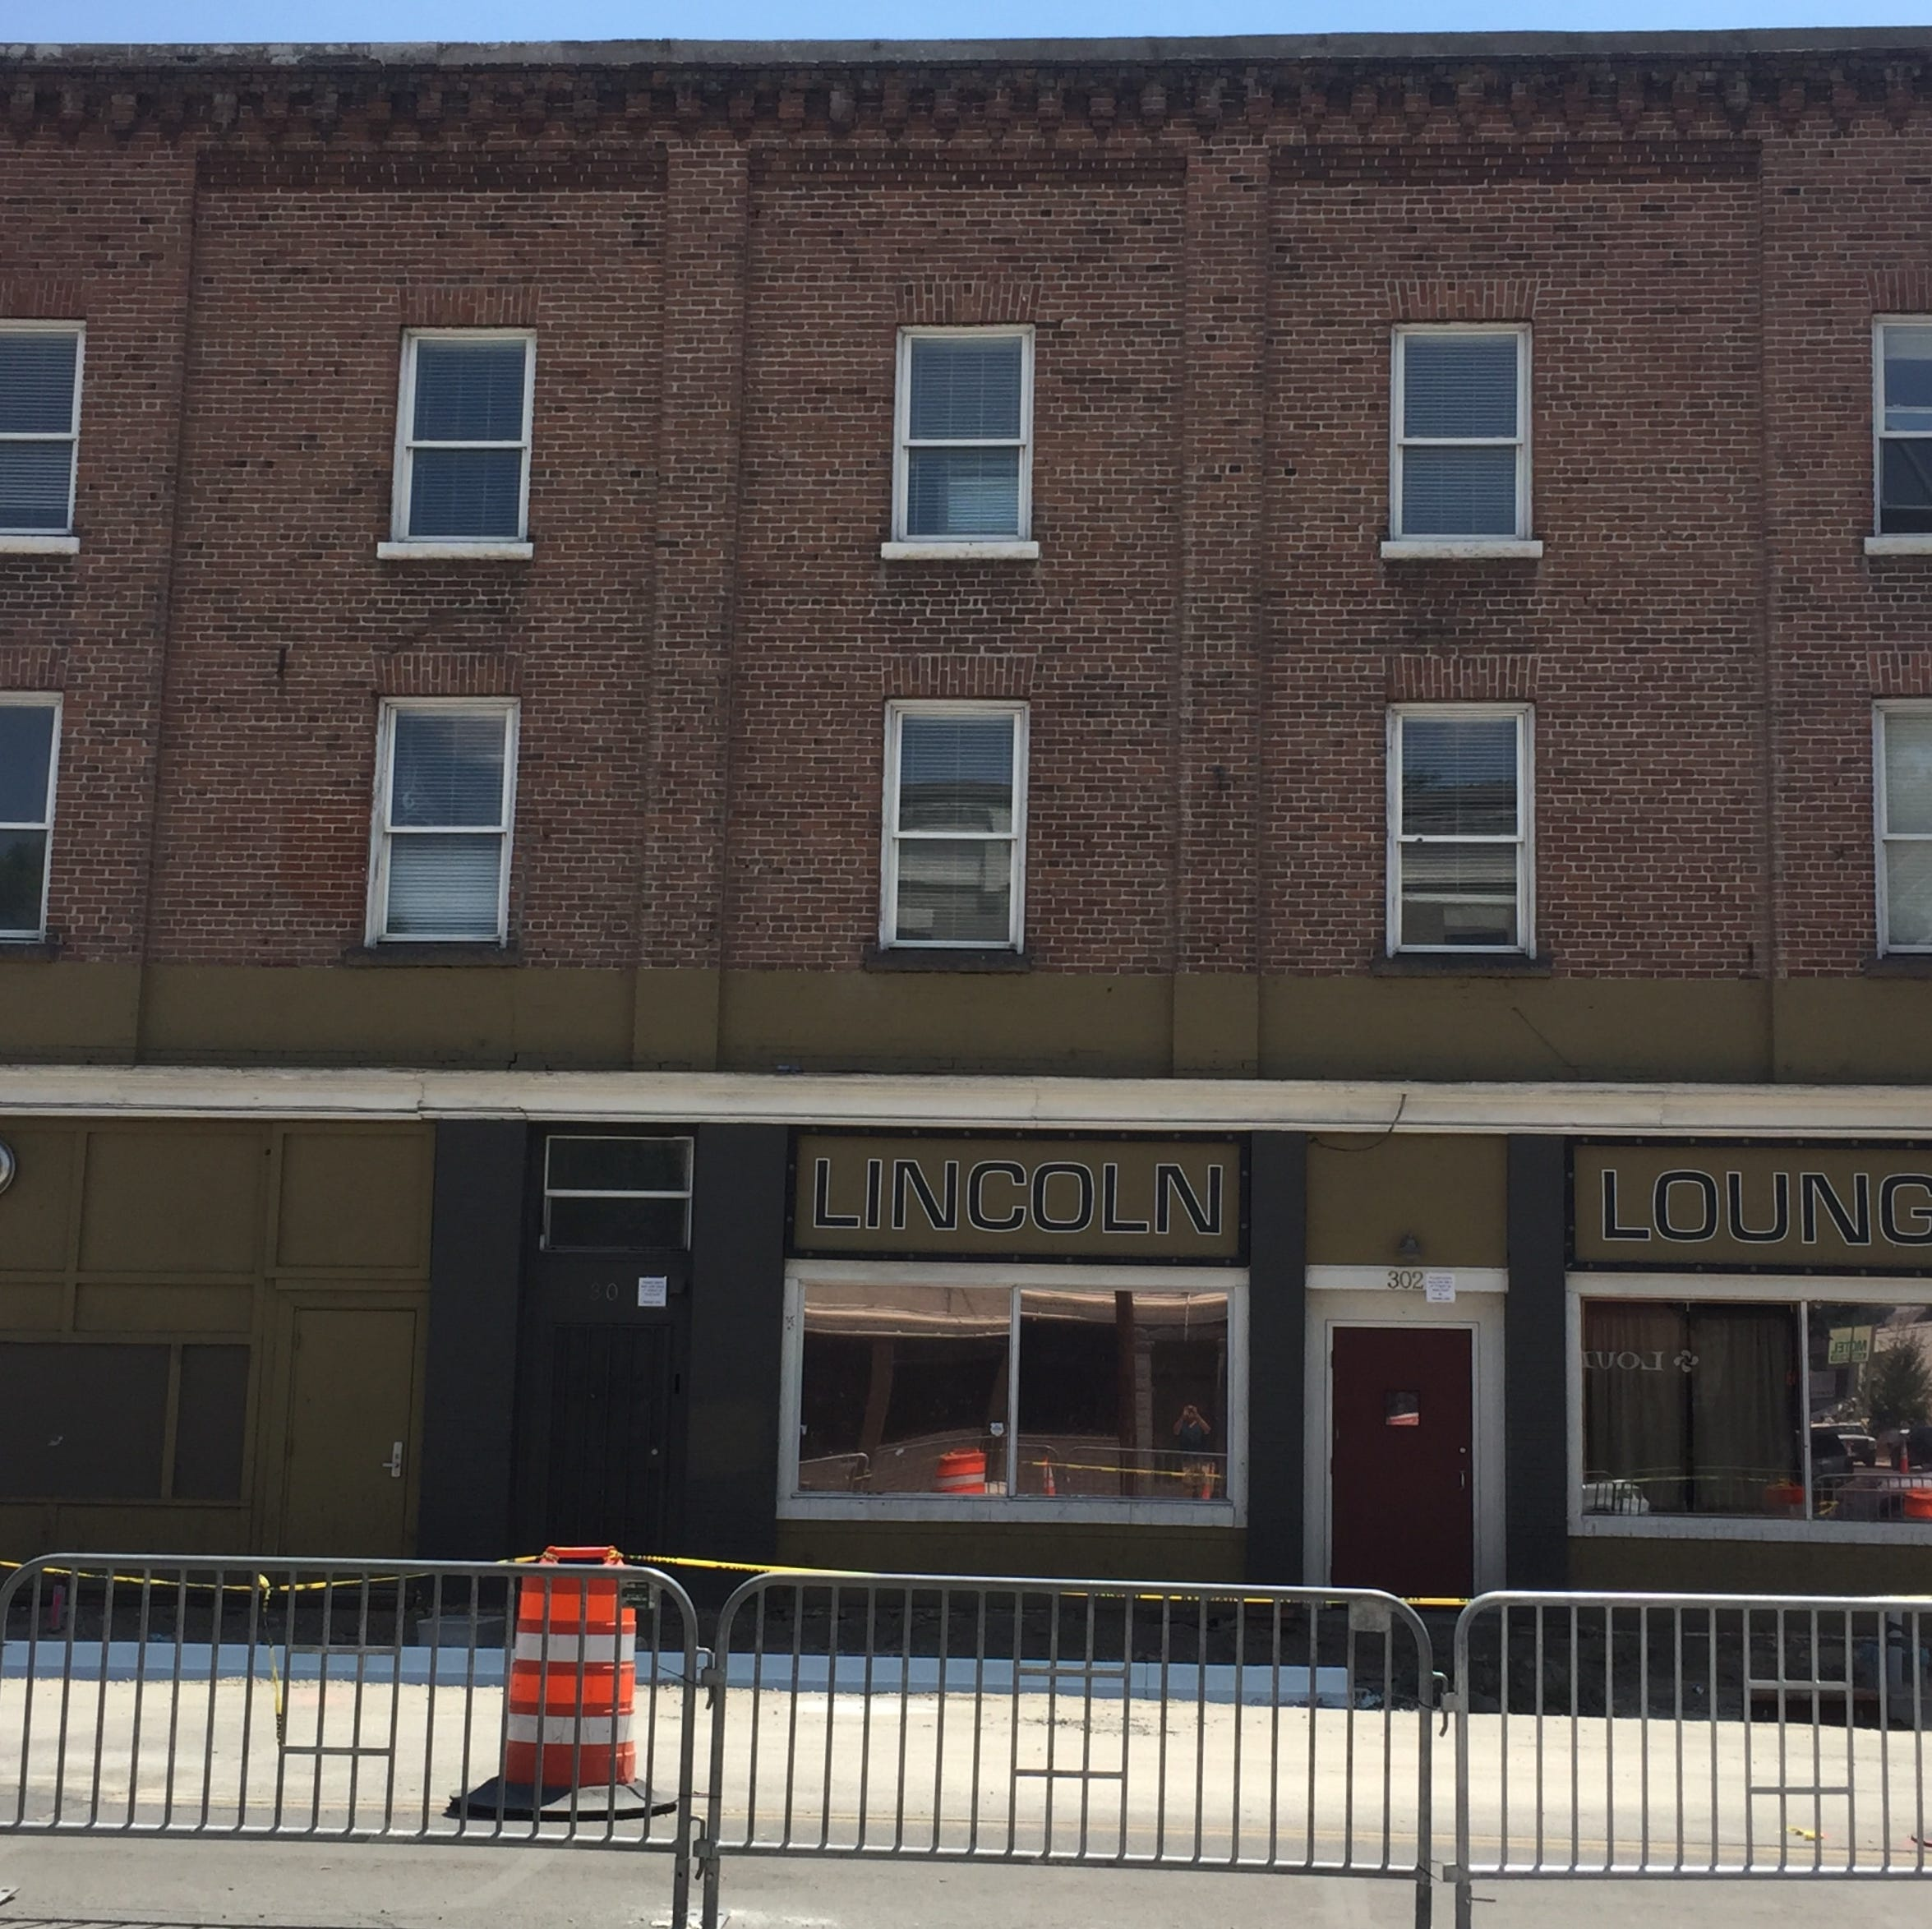 Lincoln Lounge site coming back as The Jesse